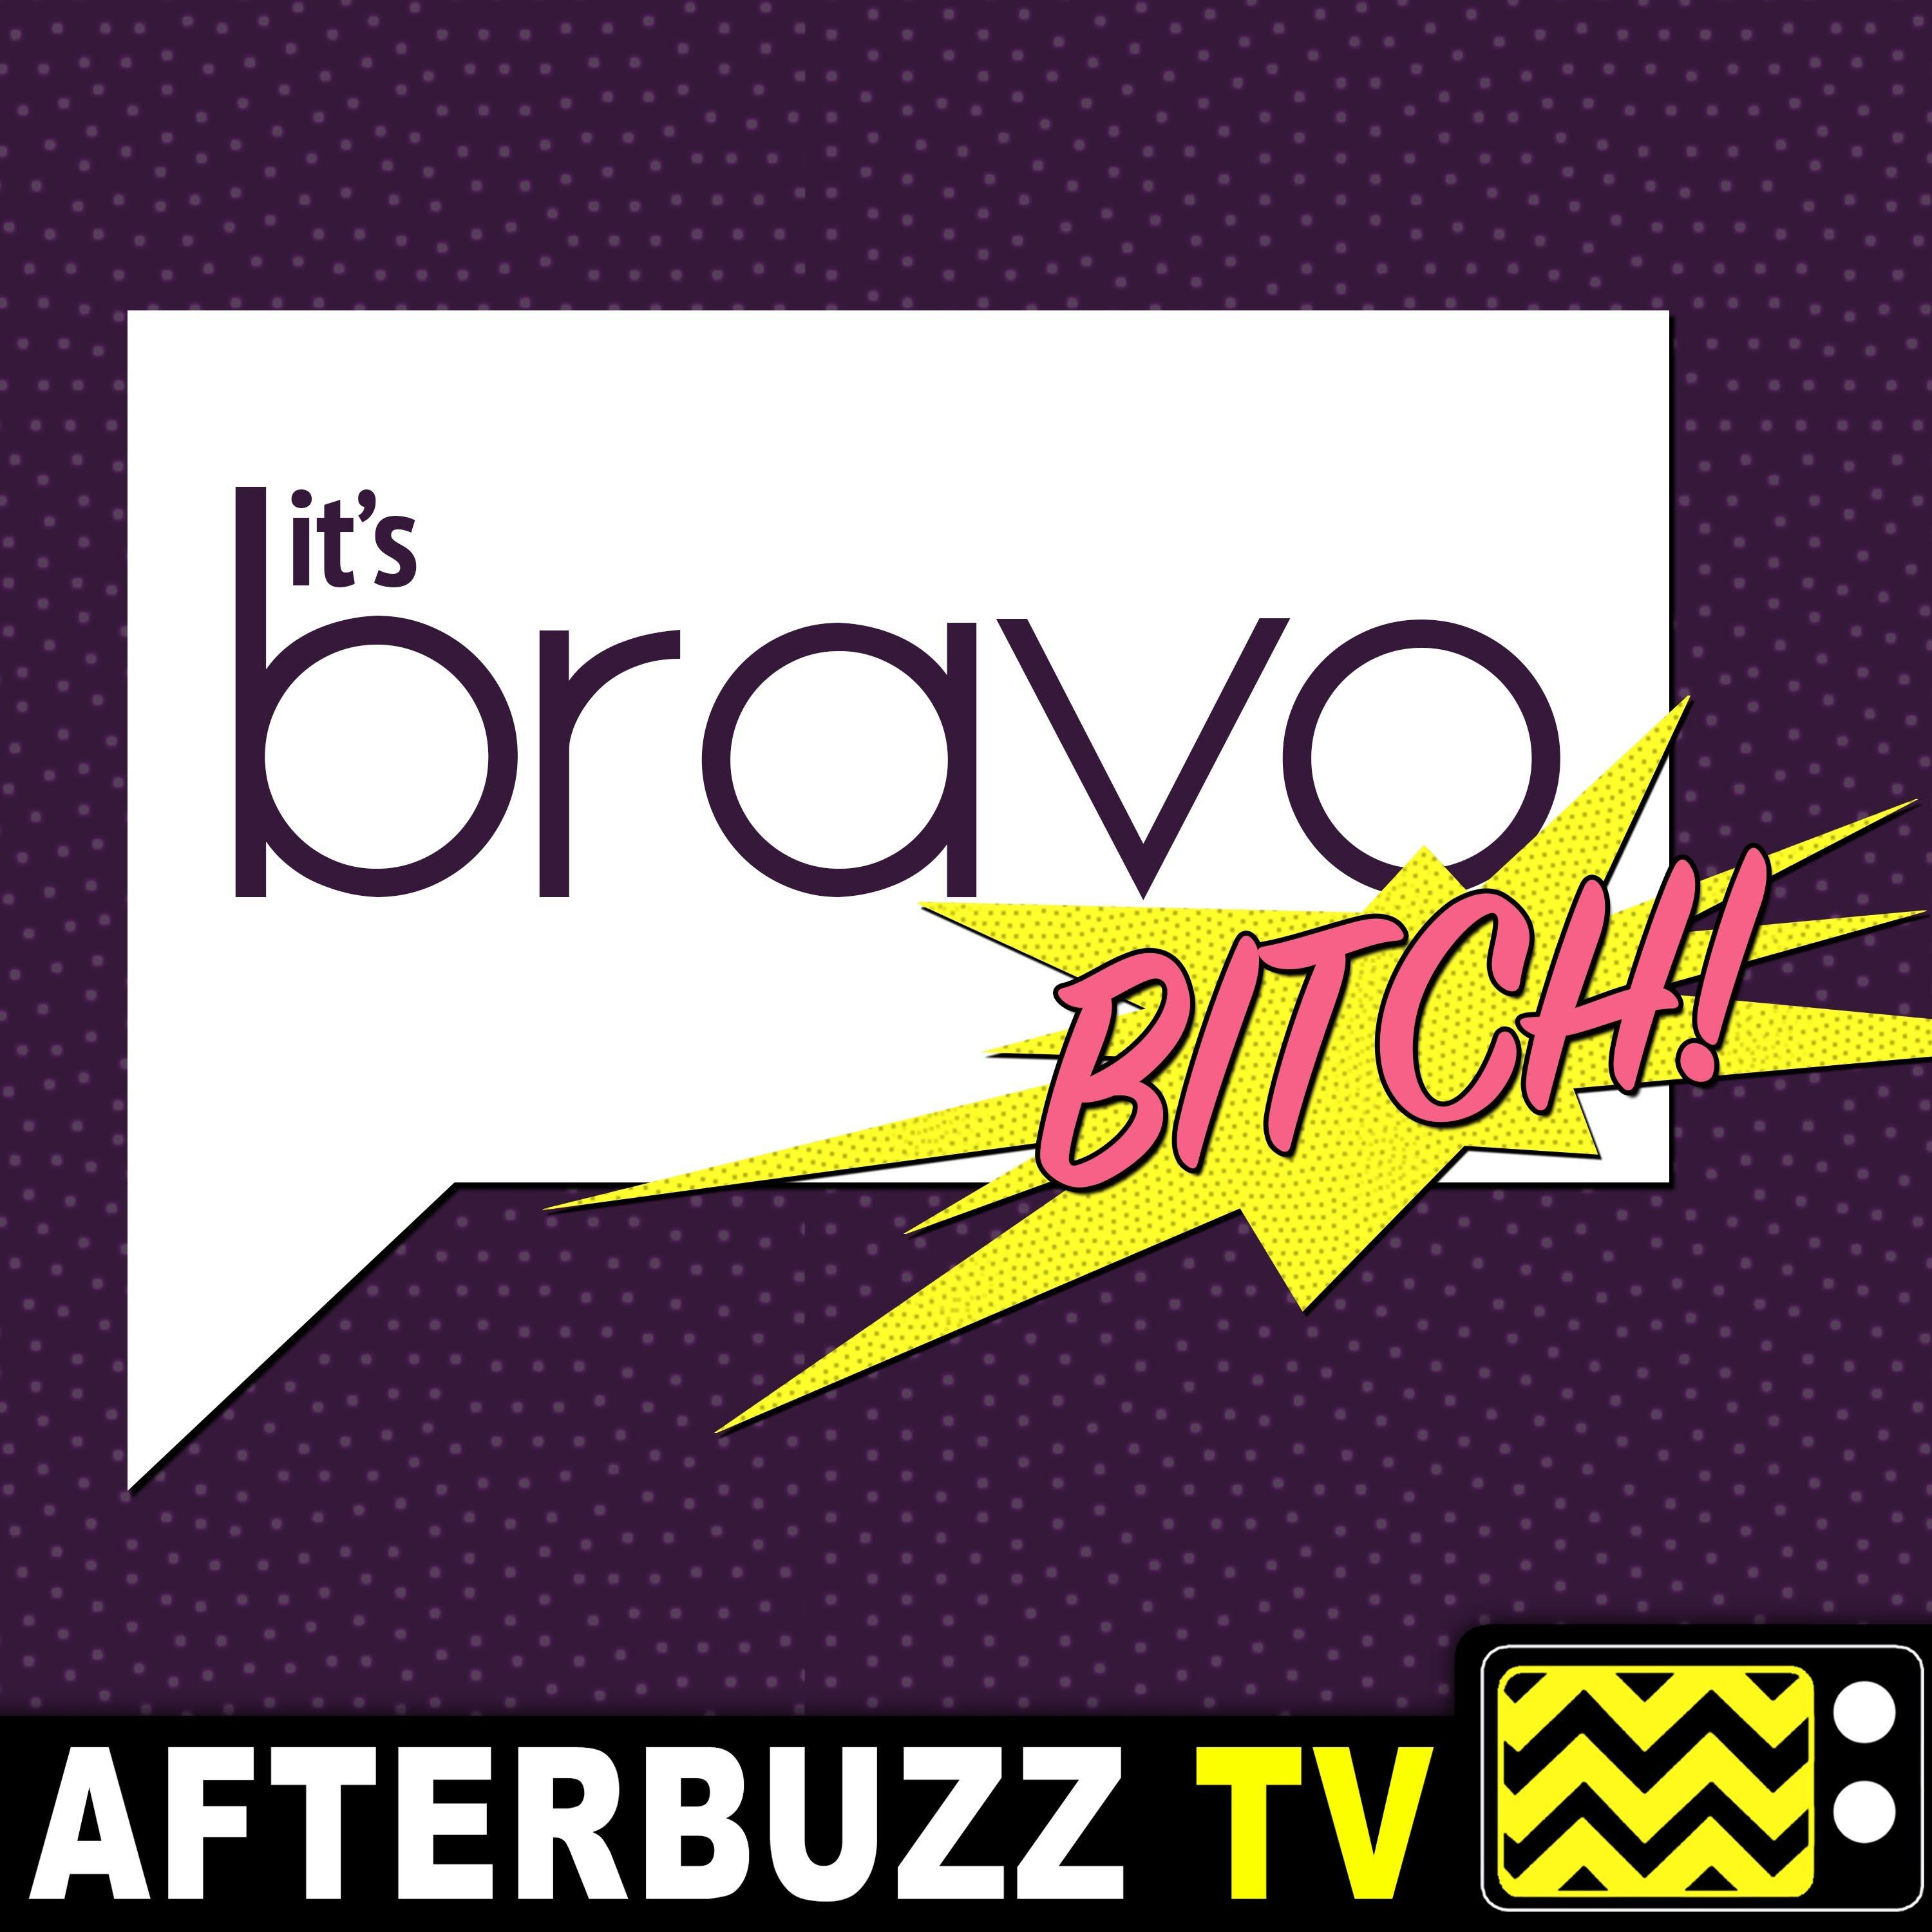 It's Bravo Bitch!